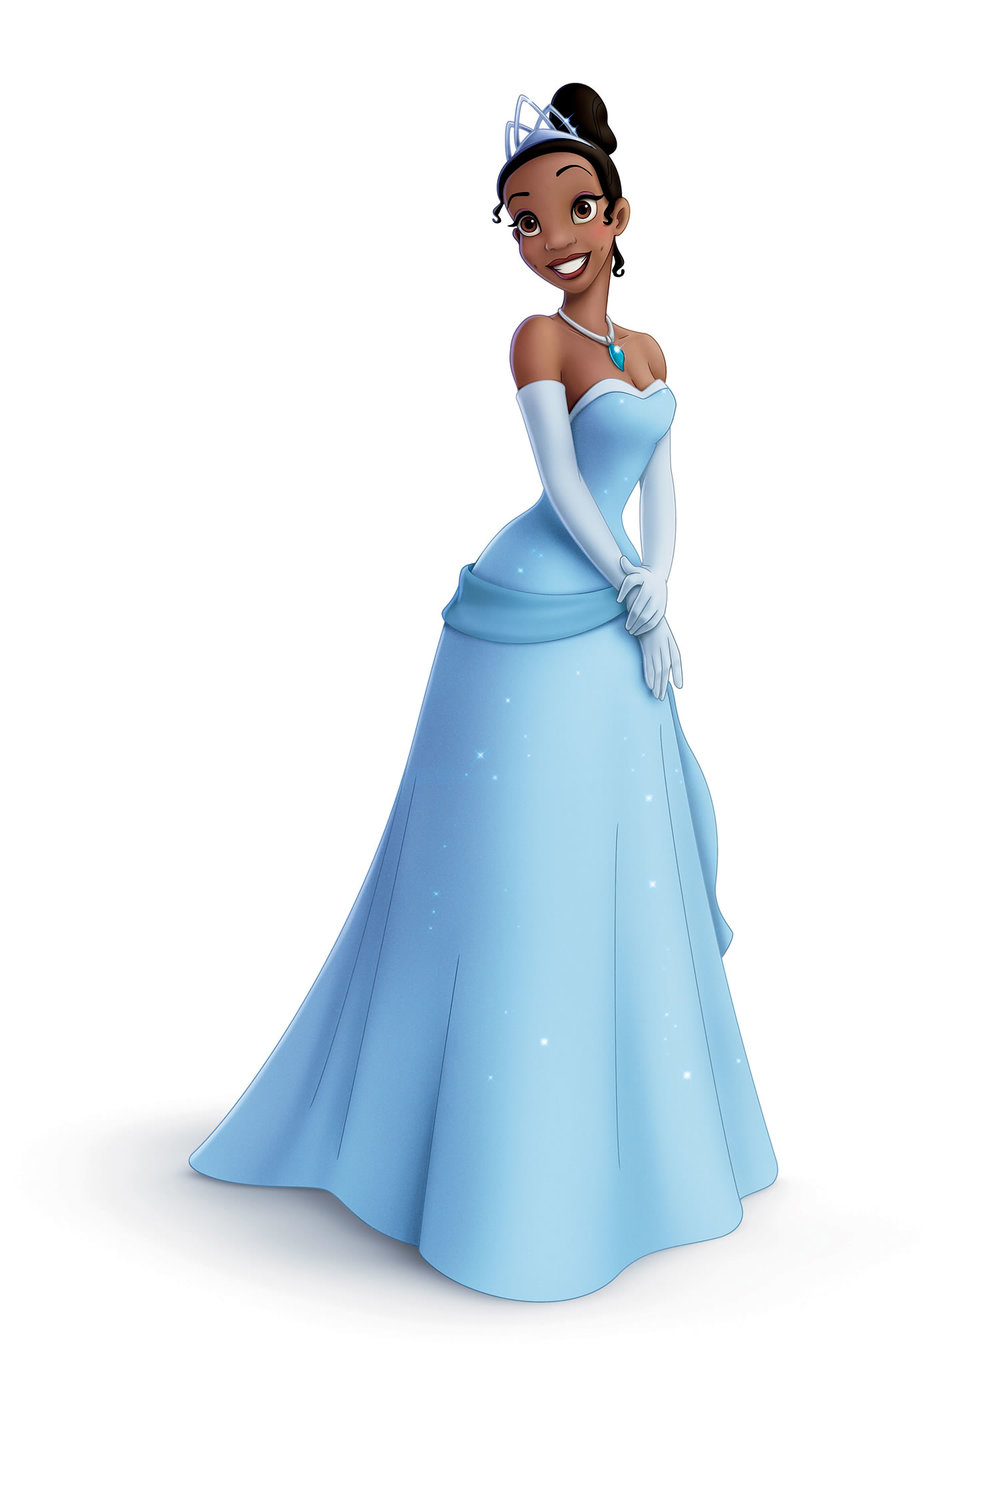 Tiana-the-princess-from-princess-and-the-frog-wallpaper-click.jpg